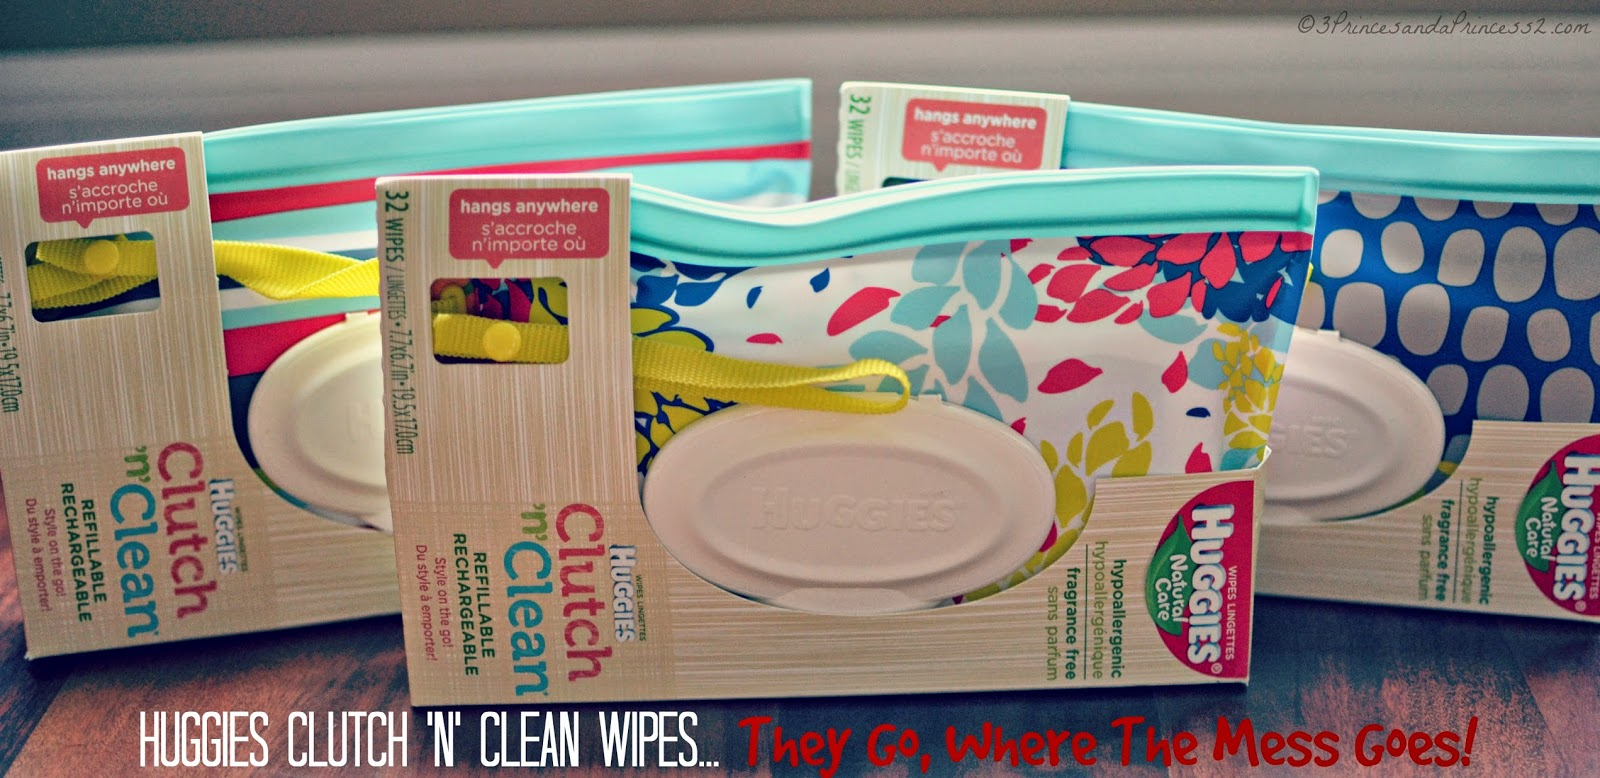 Loving these adorable stylish baby wipes from @Huggies #sp  #HuggiesMomsStyle